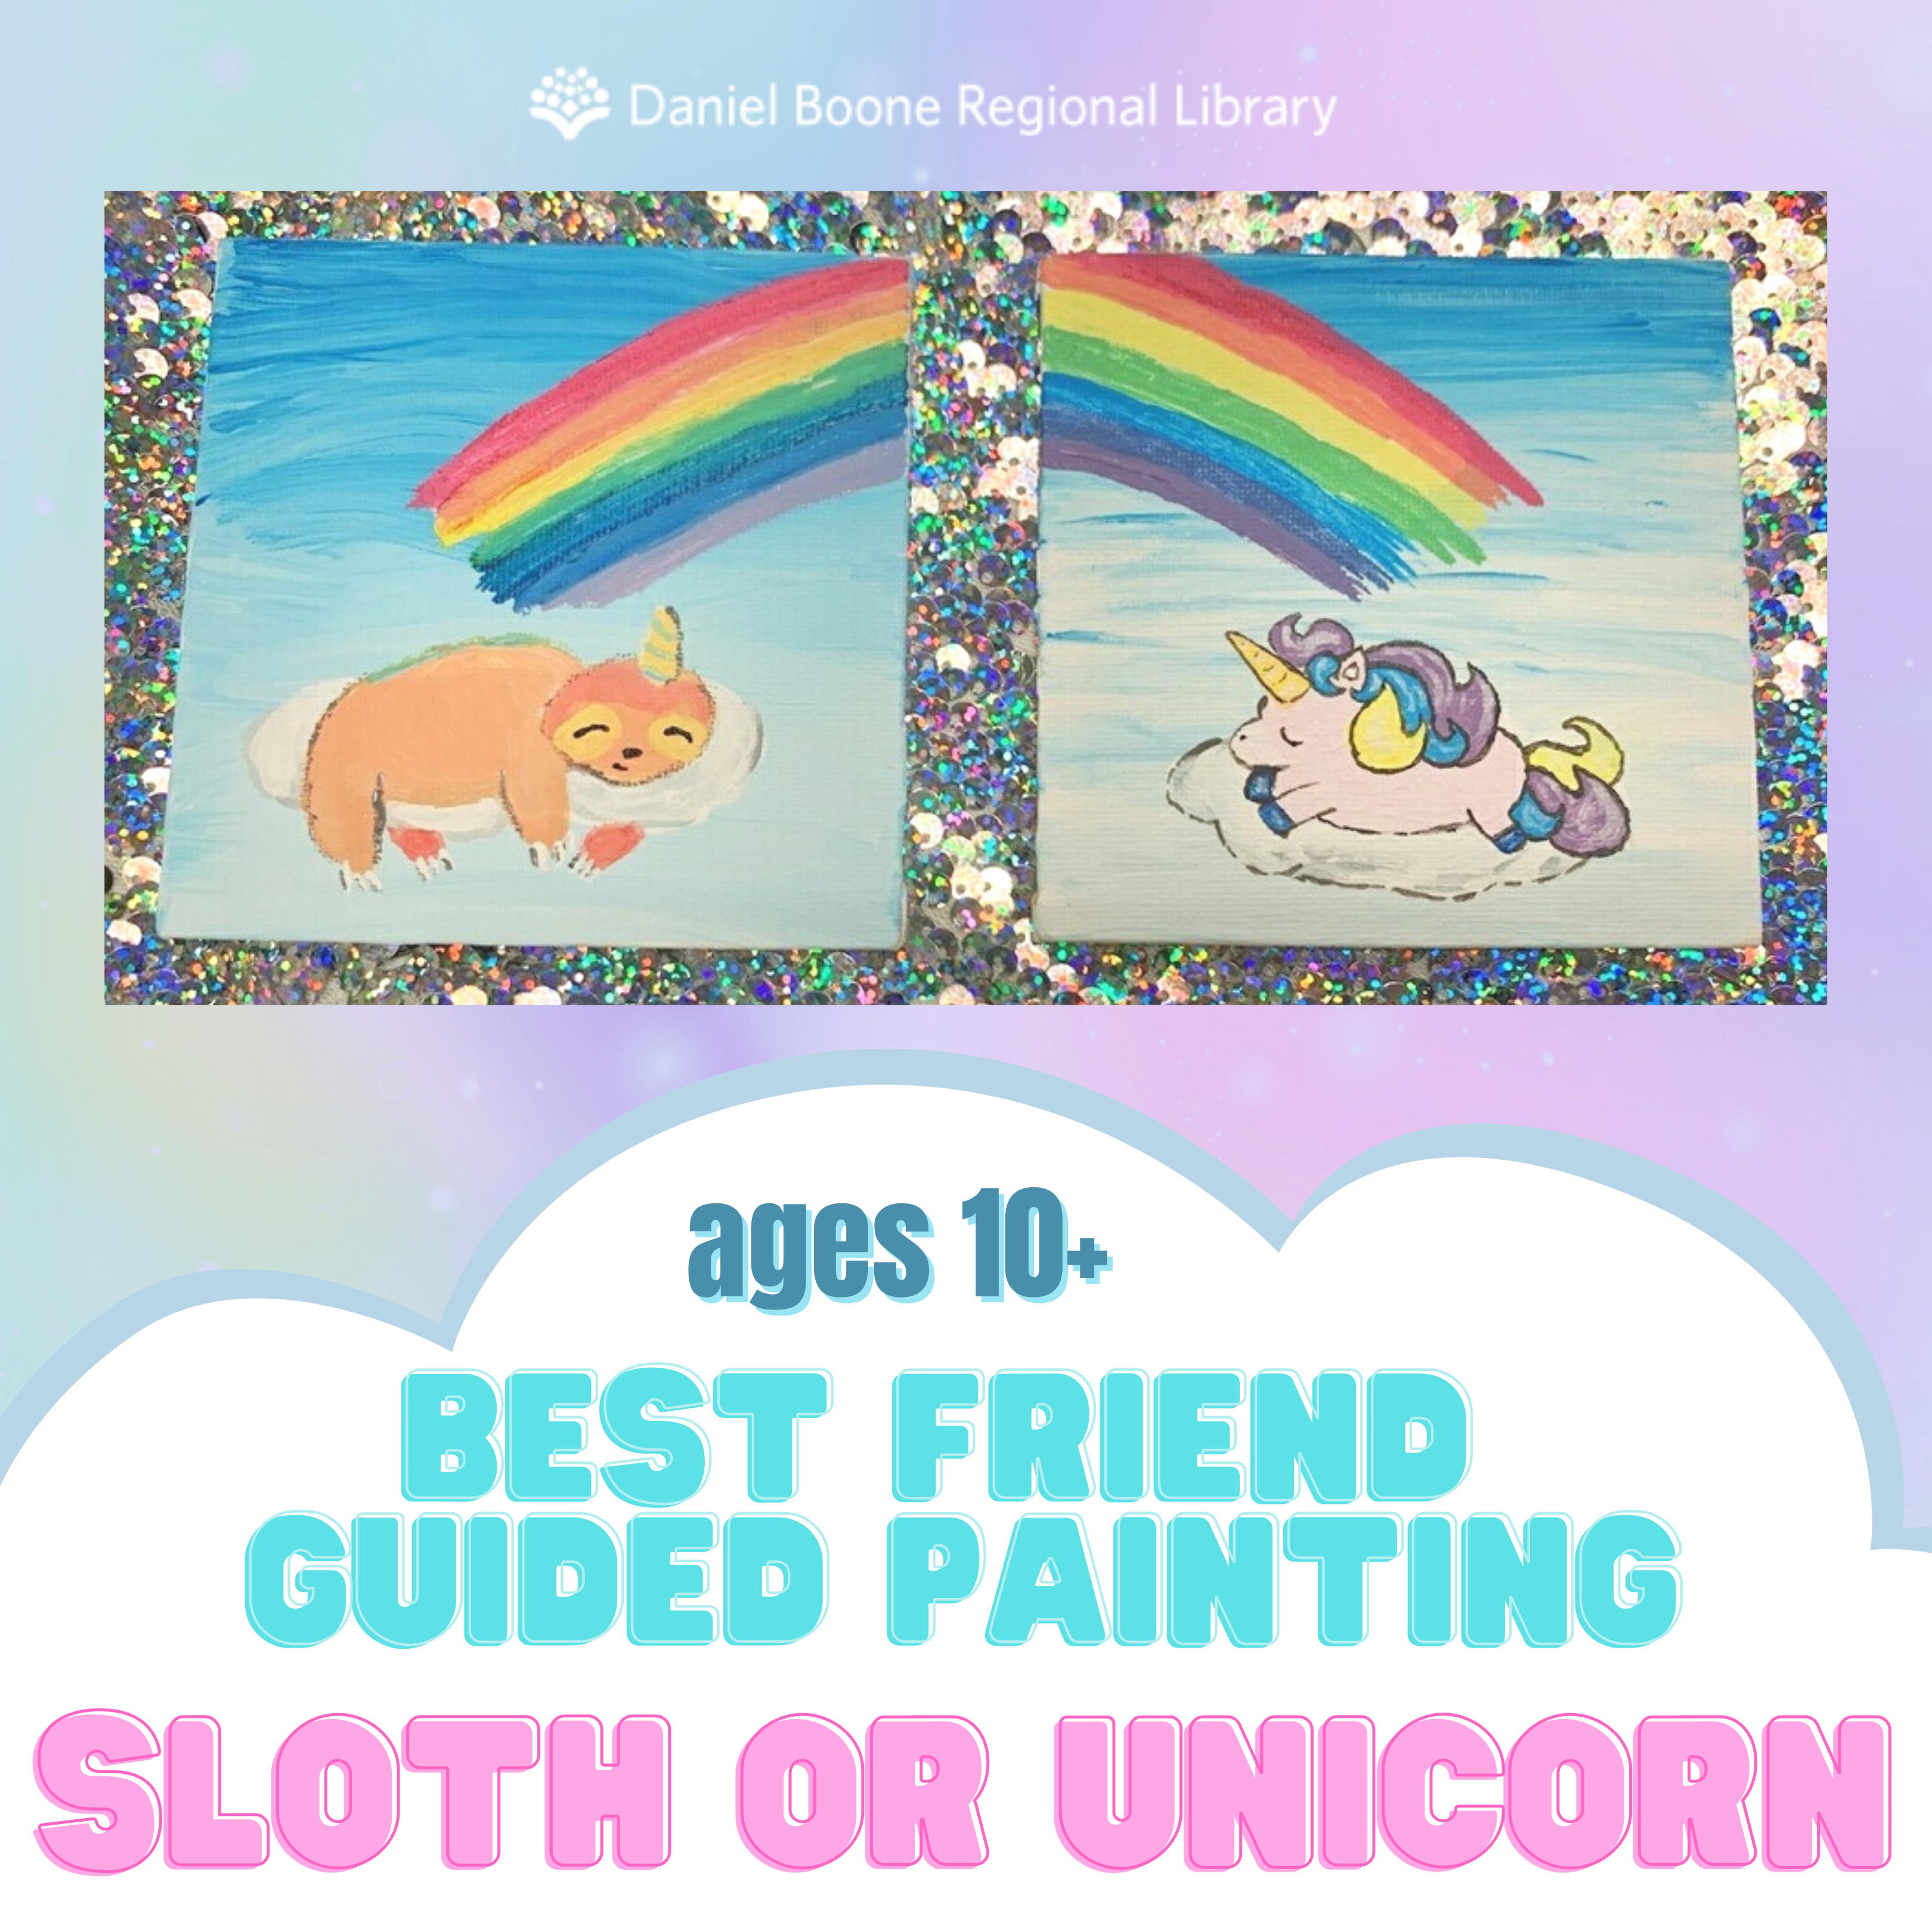 Image: Two paintings connected by a rainbow. Painting on the left has a slothicorn on a cloud and painting on the right is a unicorn on a cloud. Text: ages 10+ Best Friend Guided Painting Sloth or Unicorn